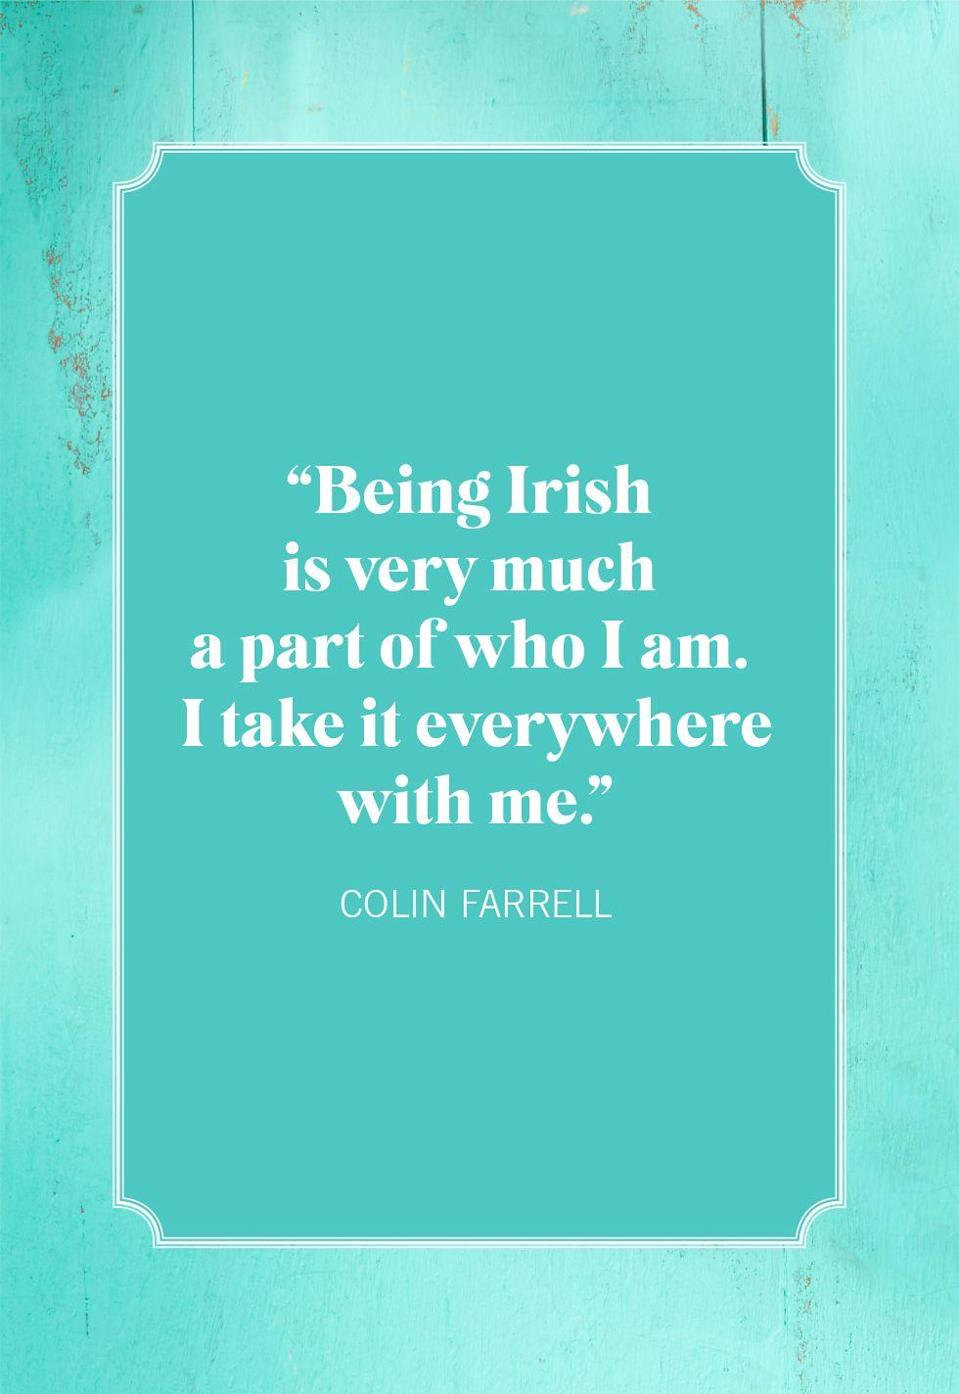 "<p>""Being Irish is very much a part of who I am. I take it everywhere with me.""</p>"